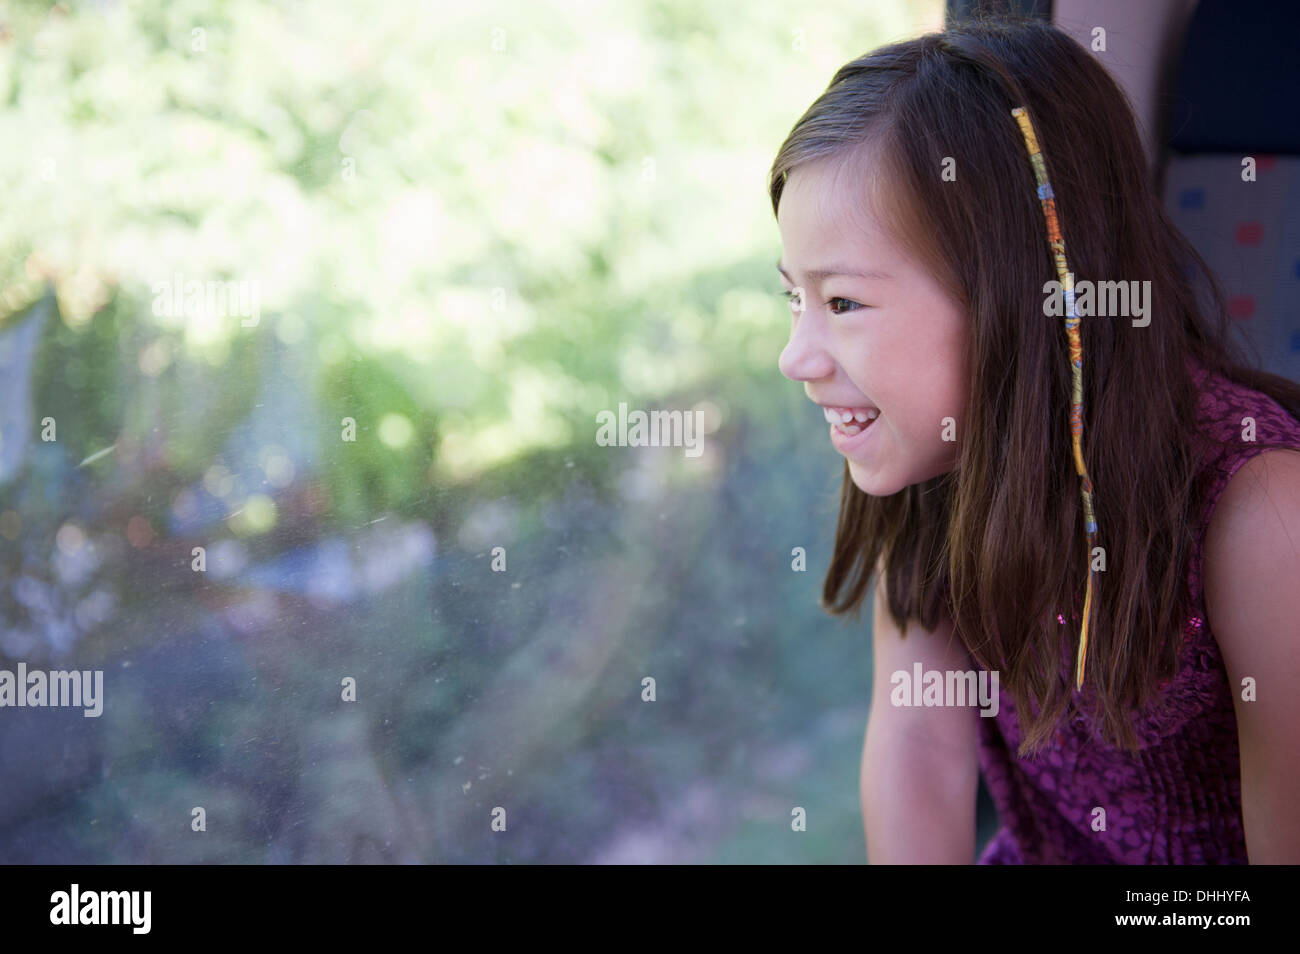 Girl looking out of train window - Stock Image